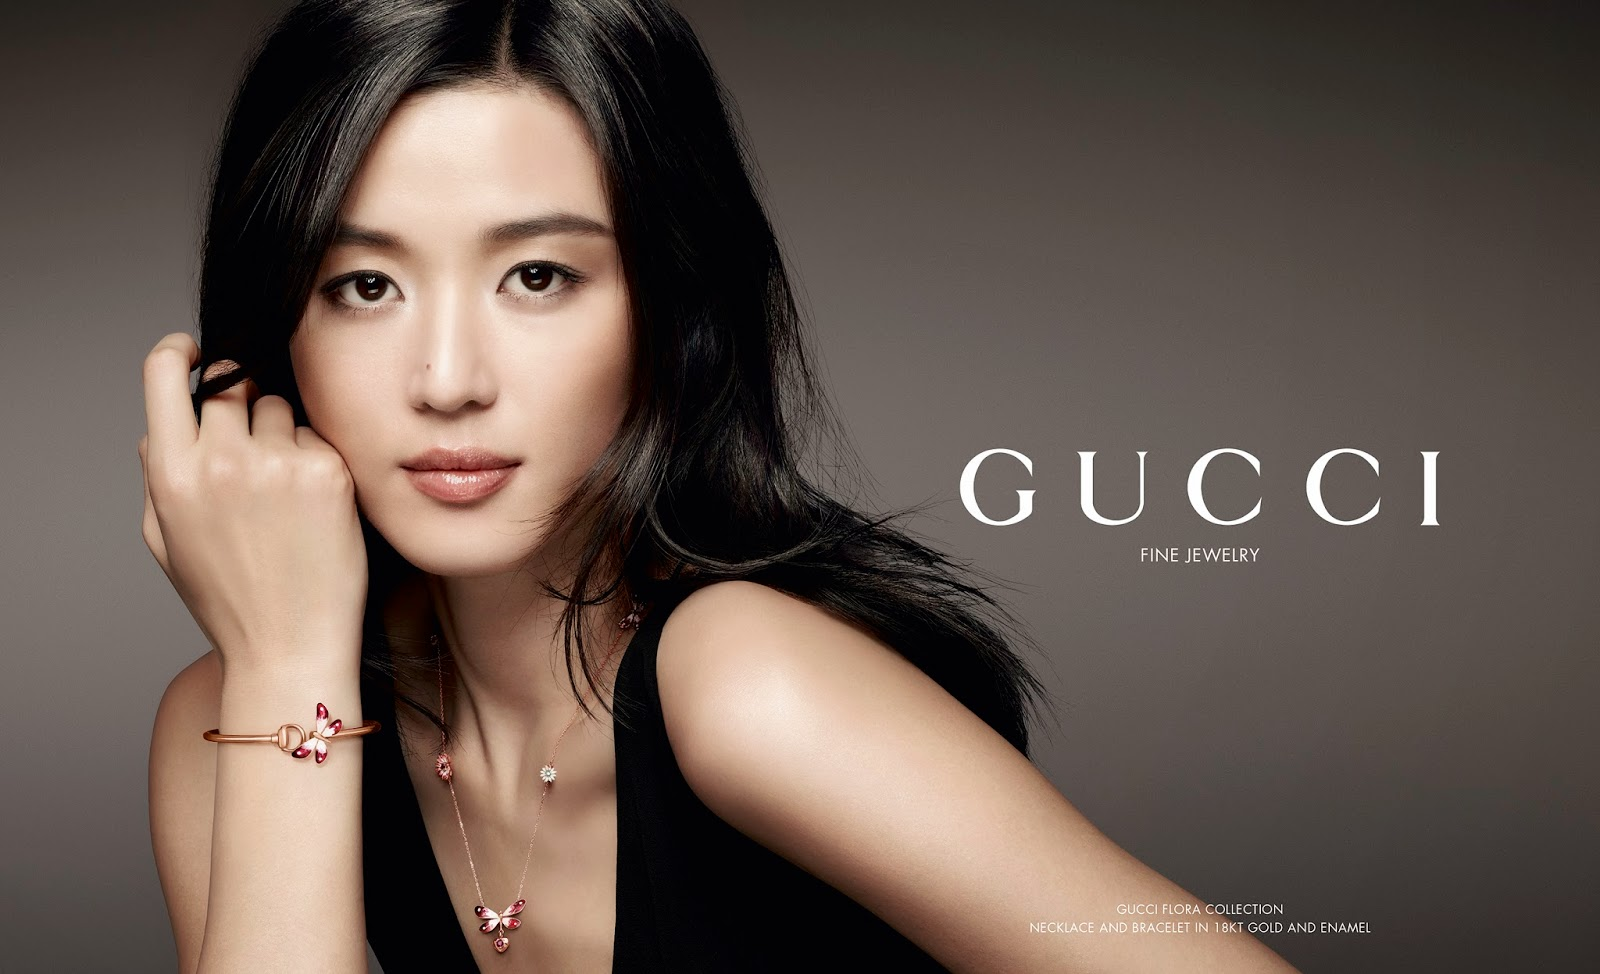 Gucci Unveils Ad Campaign Starring Gianna Jun!